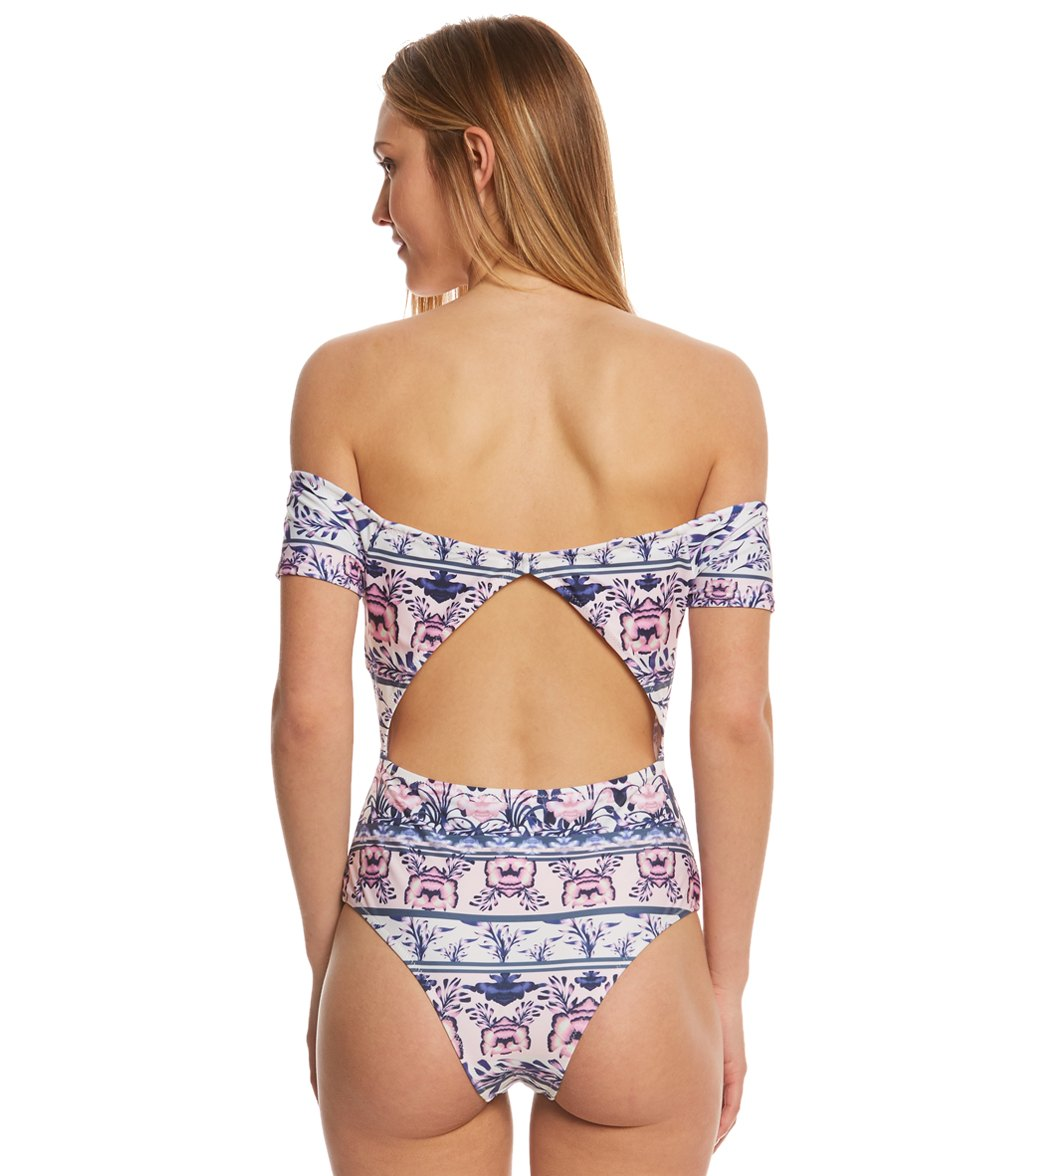 fbaaf03449 MINKPINK Mozambique Off Shoulder One Piece Swimsuit at SwimOutlet ...